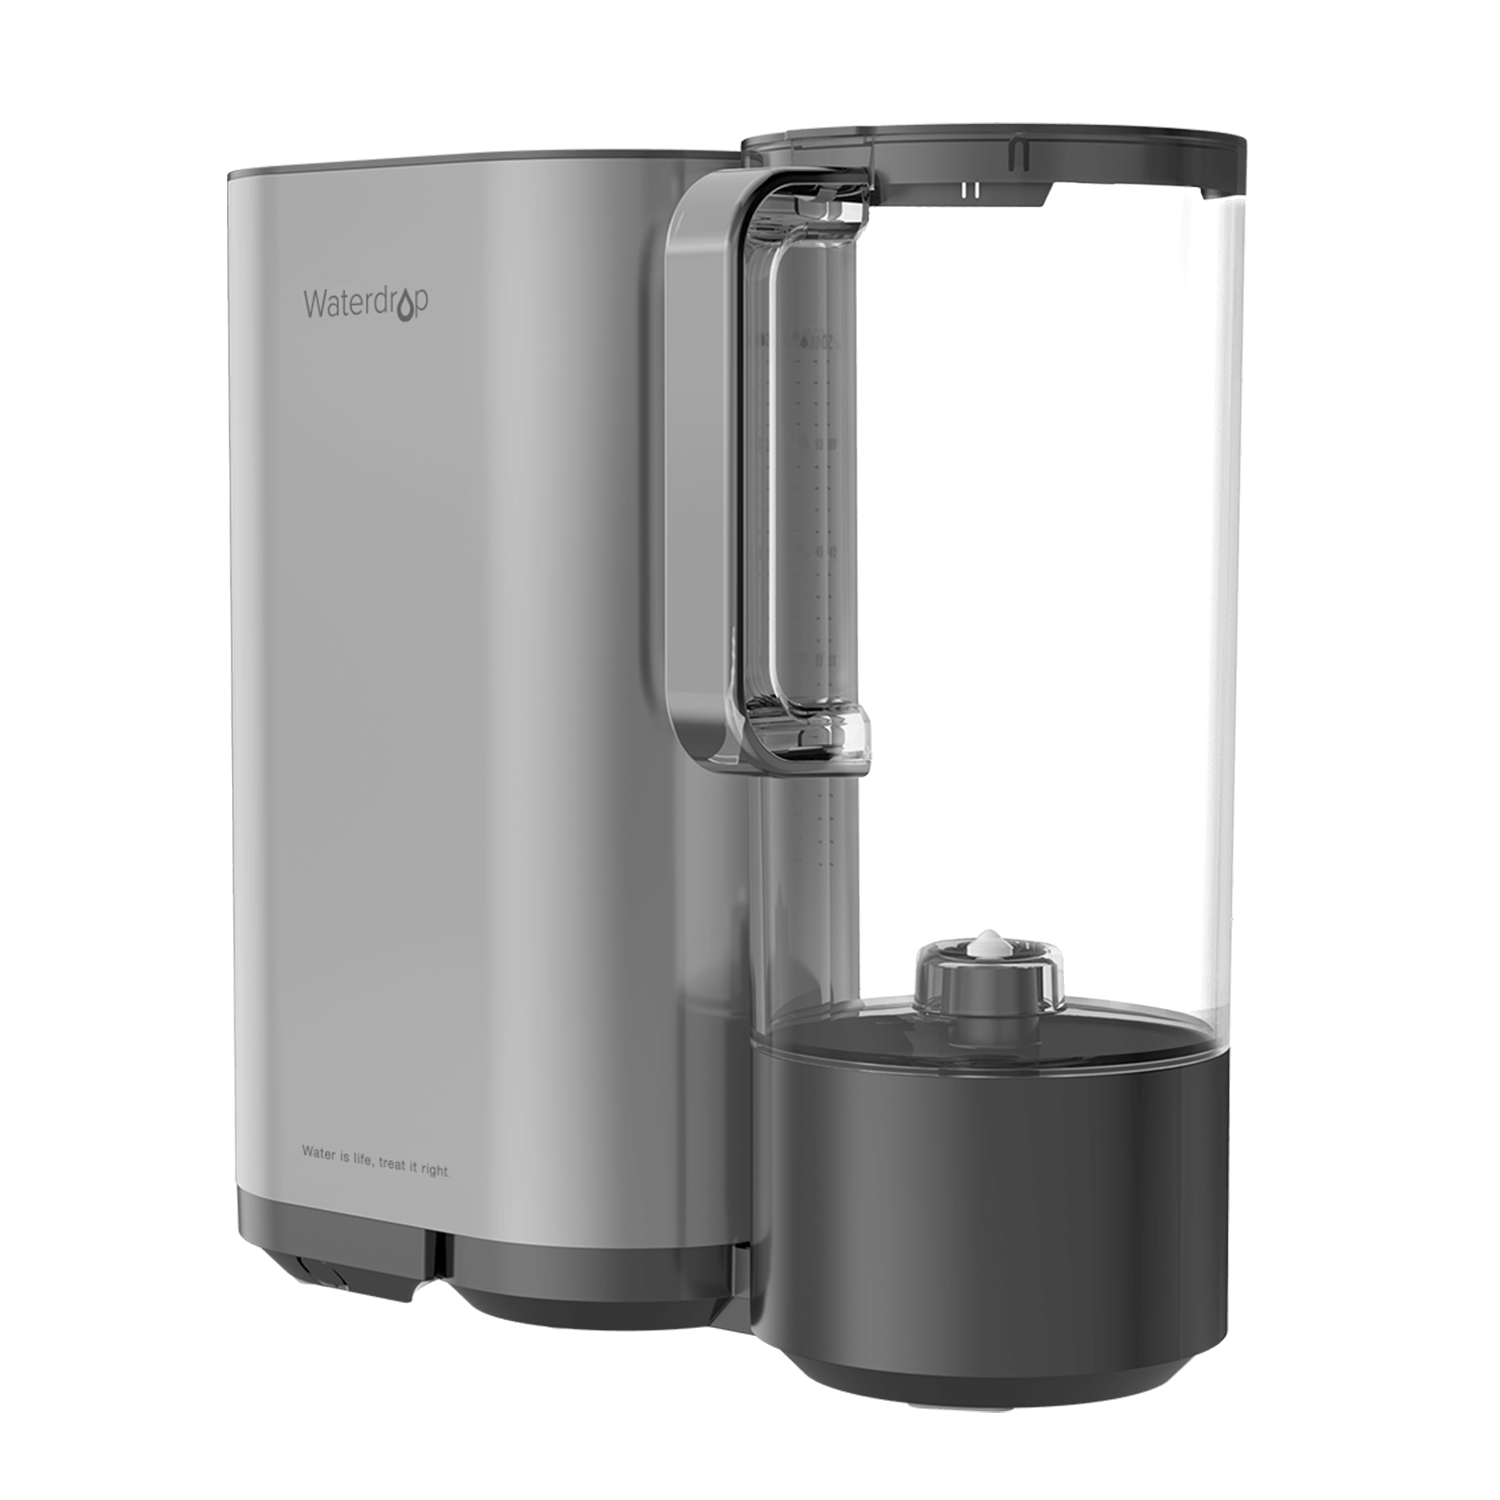 Countertop Reverse Osmosis Water Filter with Portable Water Pitcher